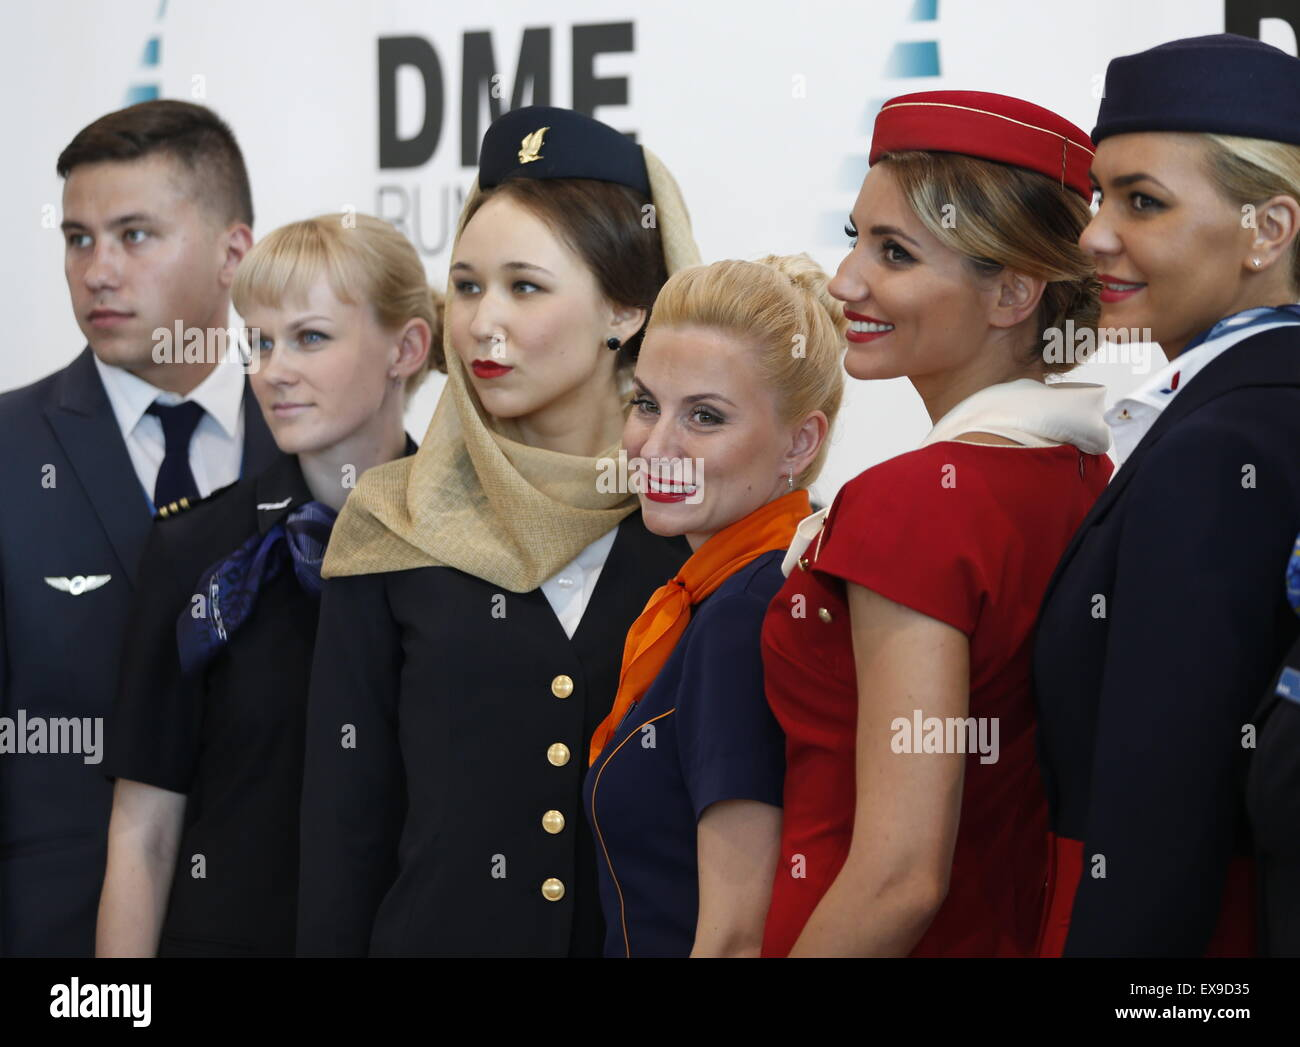 a7bb44cede9e9 Models Pose Stock Photos   Models Pose Stock Images - Page 2 - Alamy